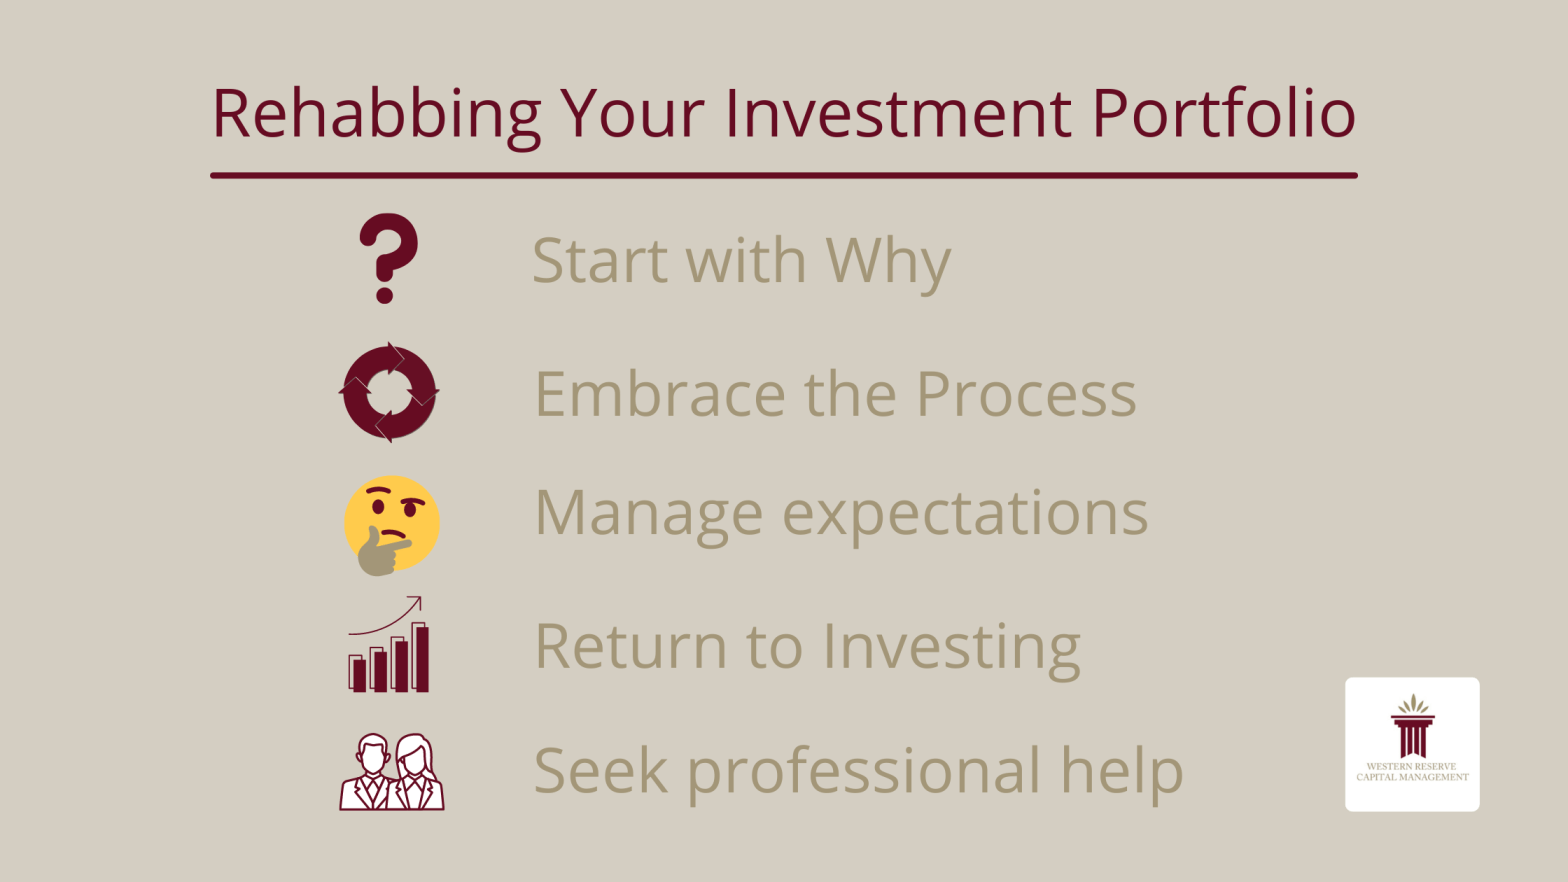 Rehabbing Your Investment Portfolio